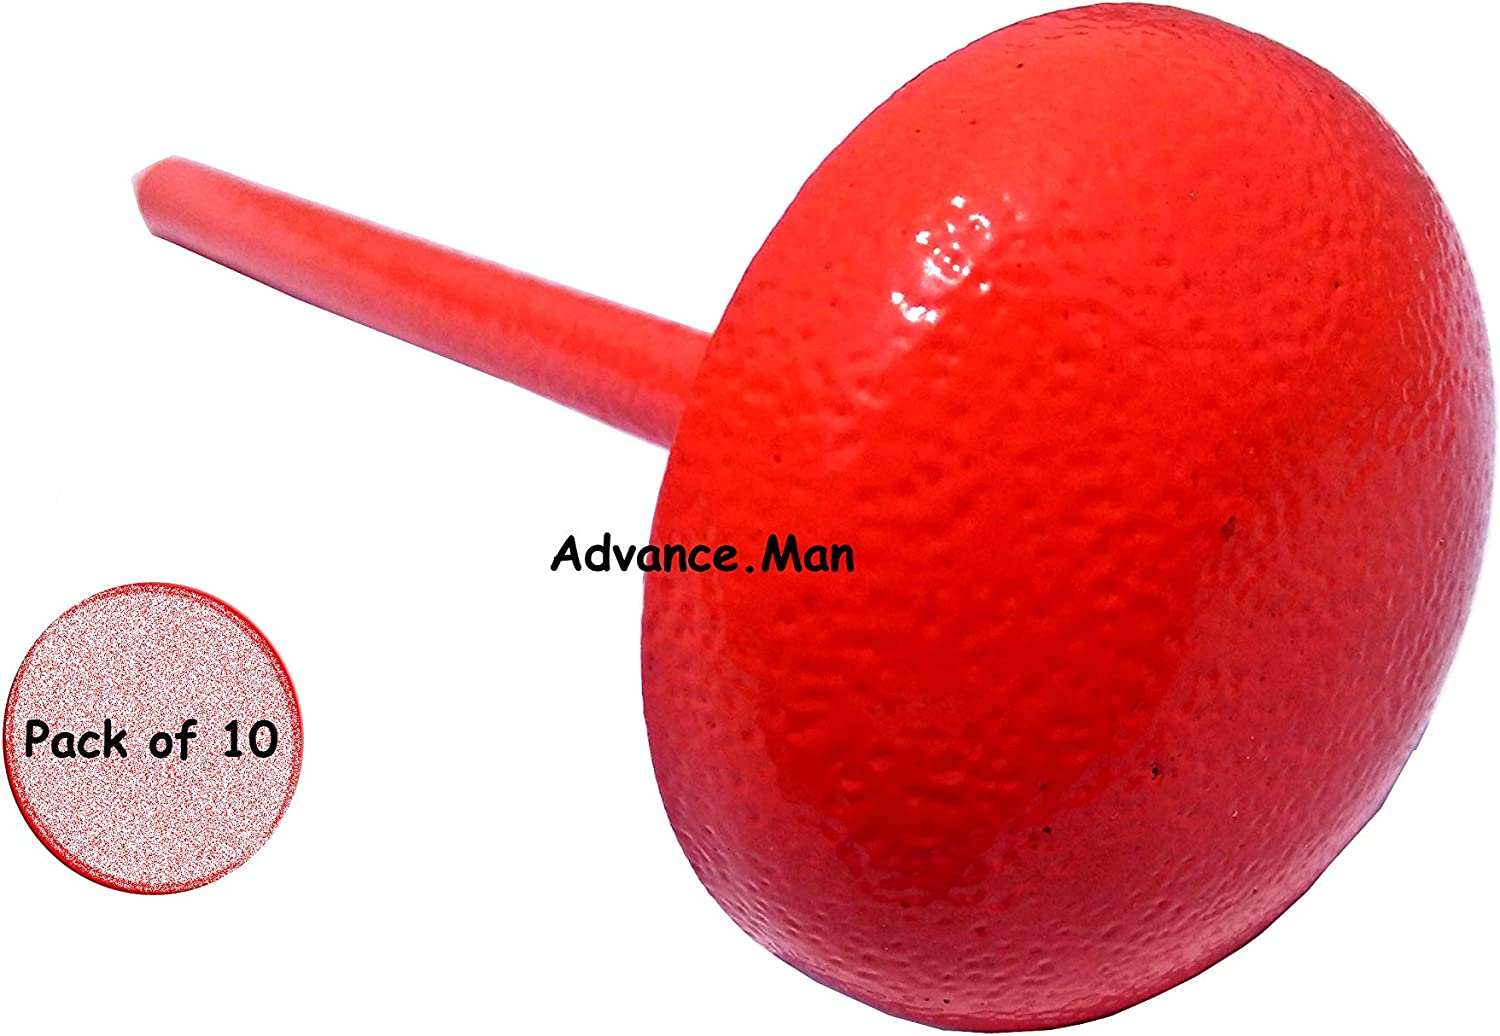 Advance.Man Engineering Survey Marker - 10 Pack in Orange Color